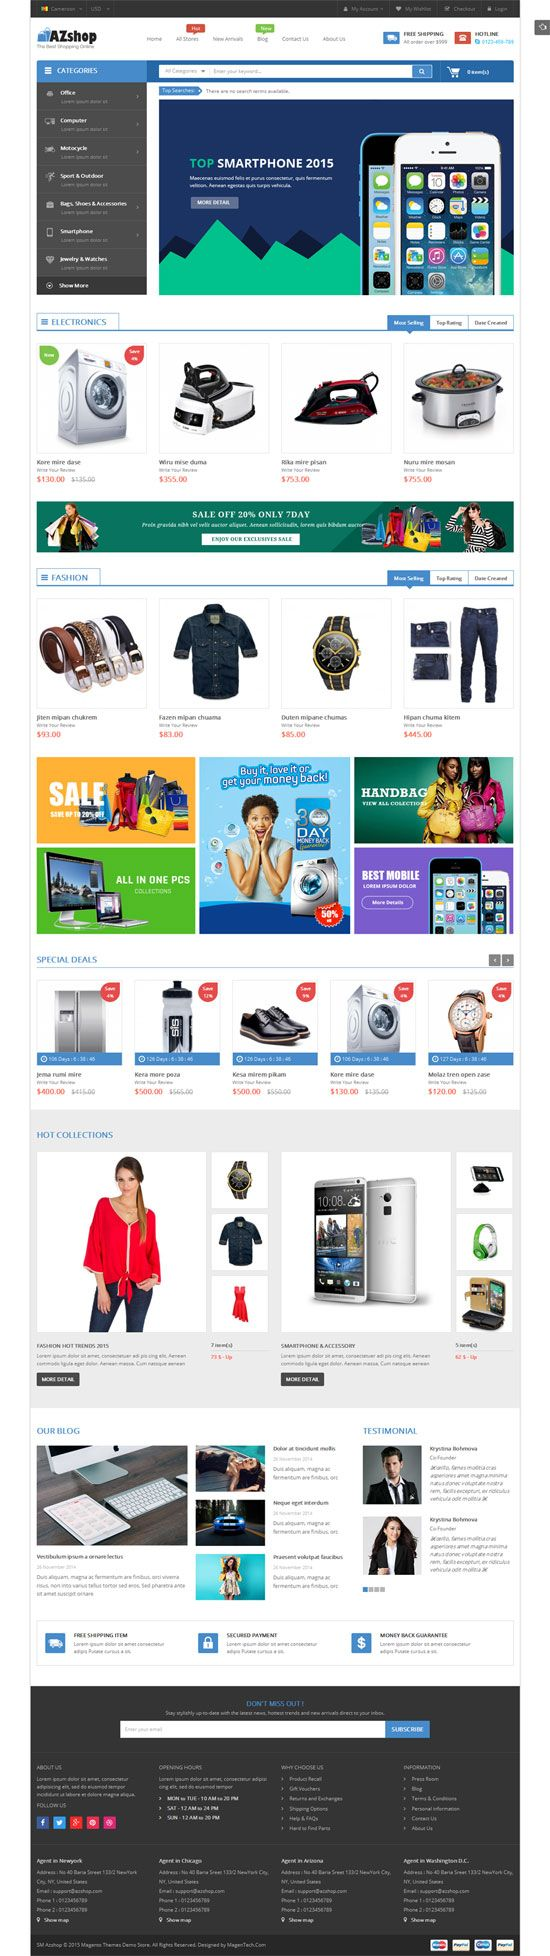 SM Azshop - Responsive Multipurpose Magento Theme Screenshot 6